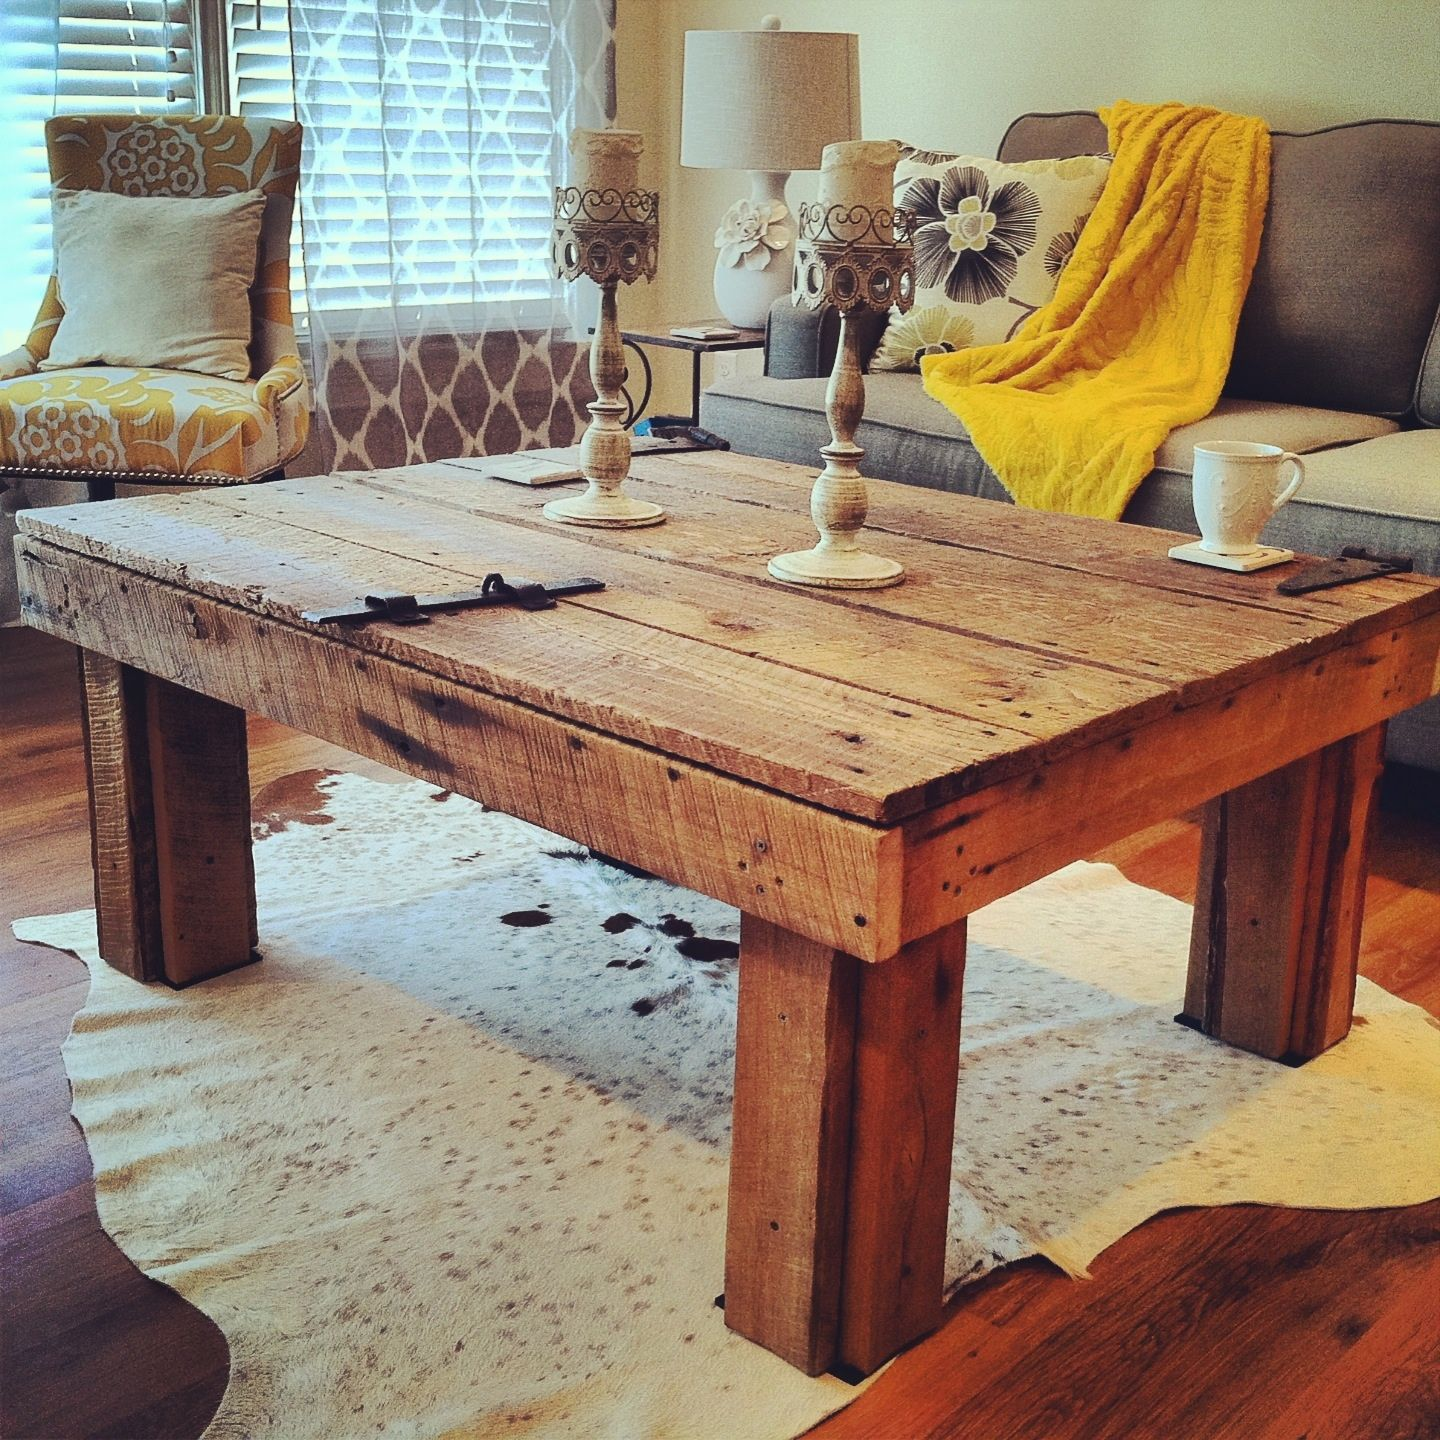 Our homemade barn door coffee table. ~100-year-old wood ...